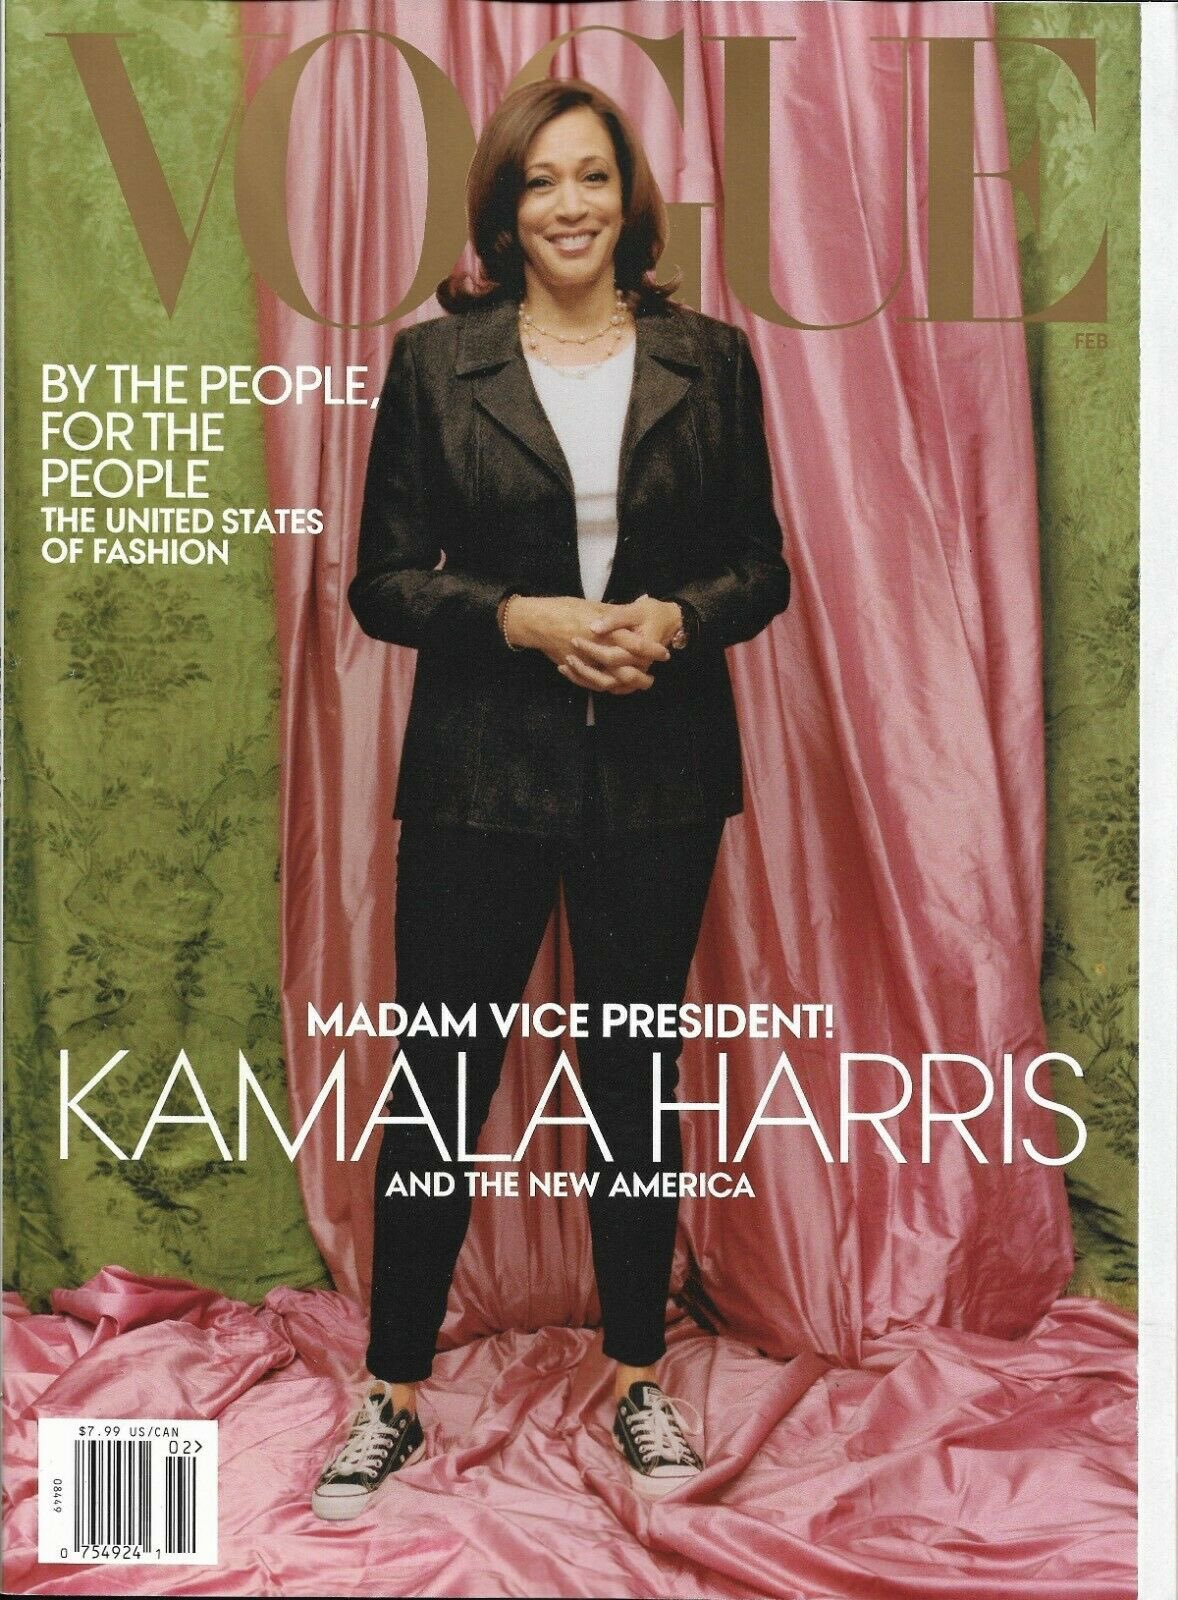 Vogue's Kamala Harris cover sparks social media frenzy: 'What a mess up'